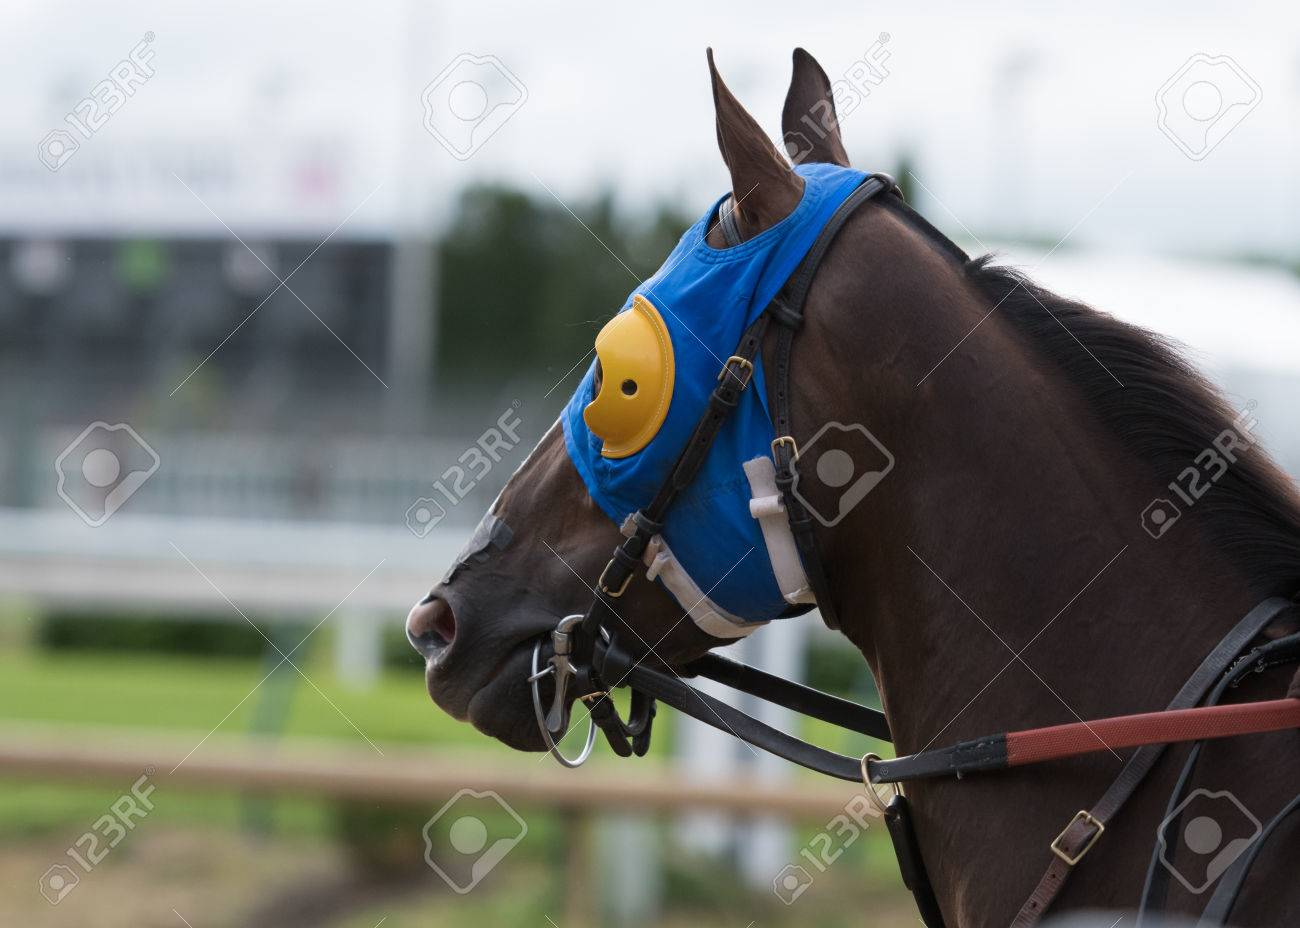 Horse With Blue And Yellow Blinkers And Leather Bridle Stock Photo Picture And Royalty Free Image Image 58974288